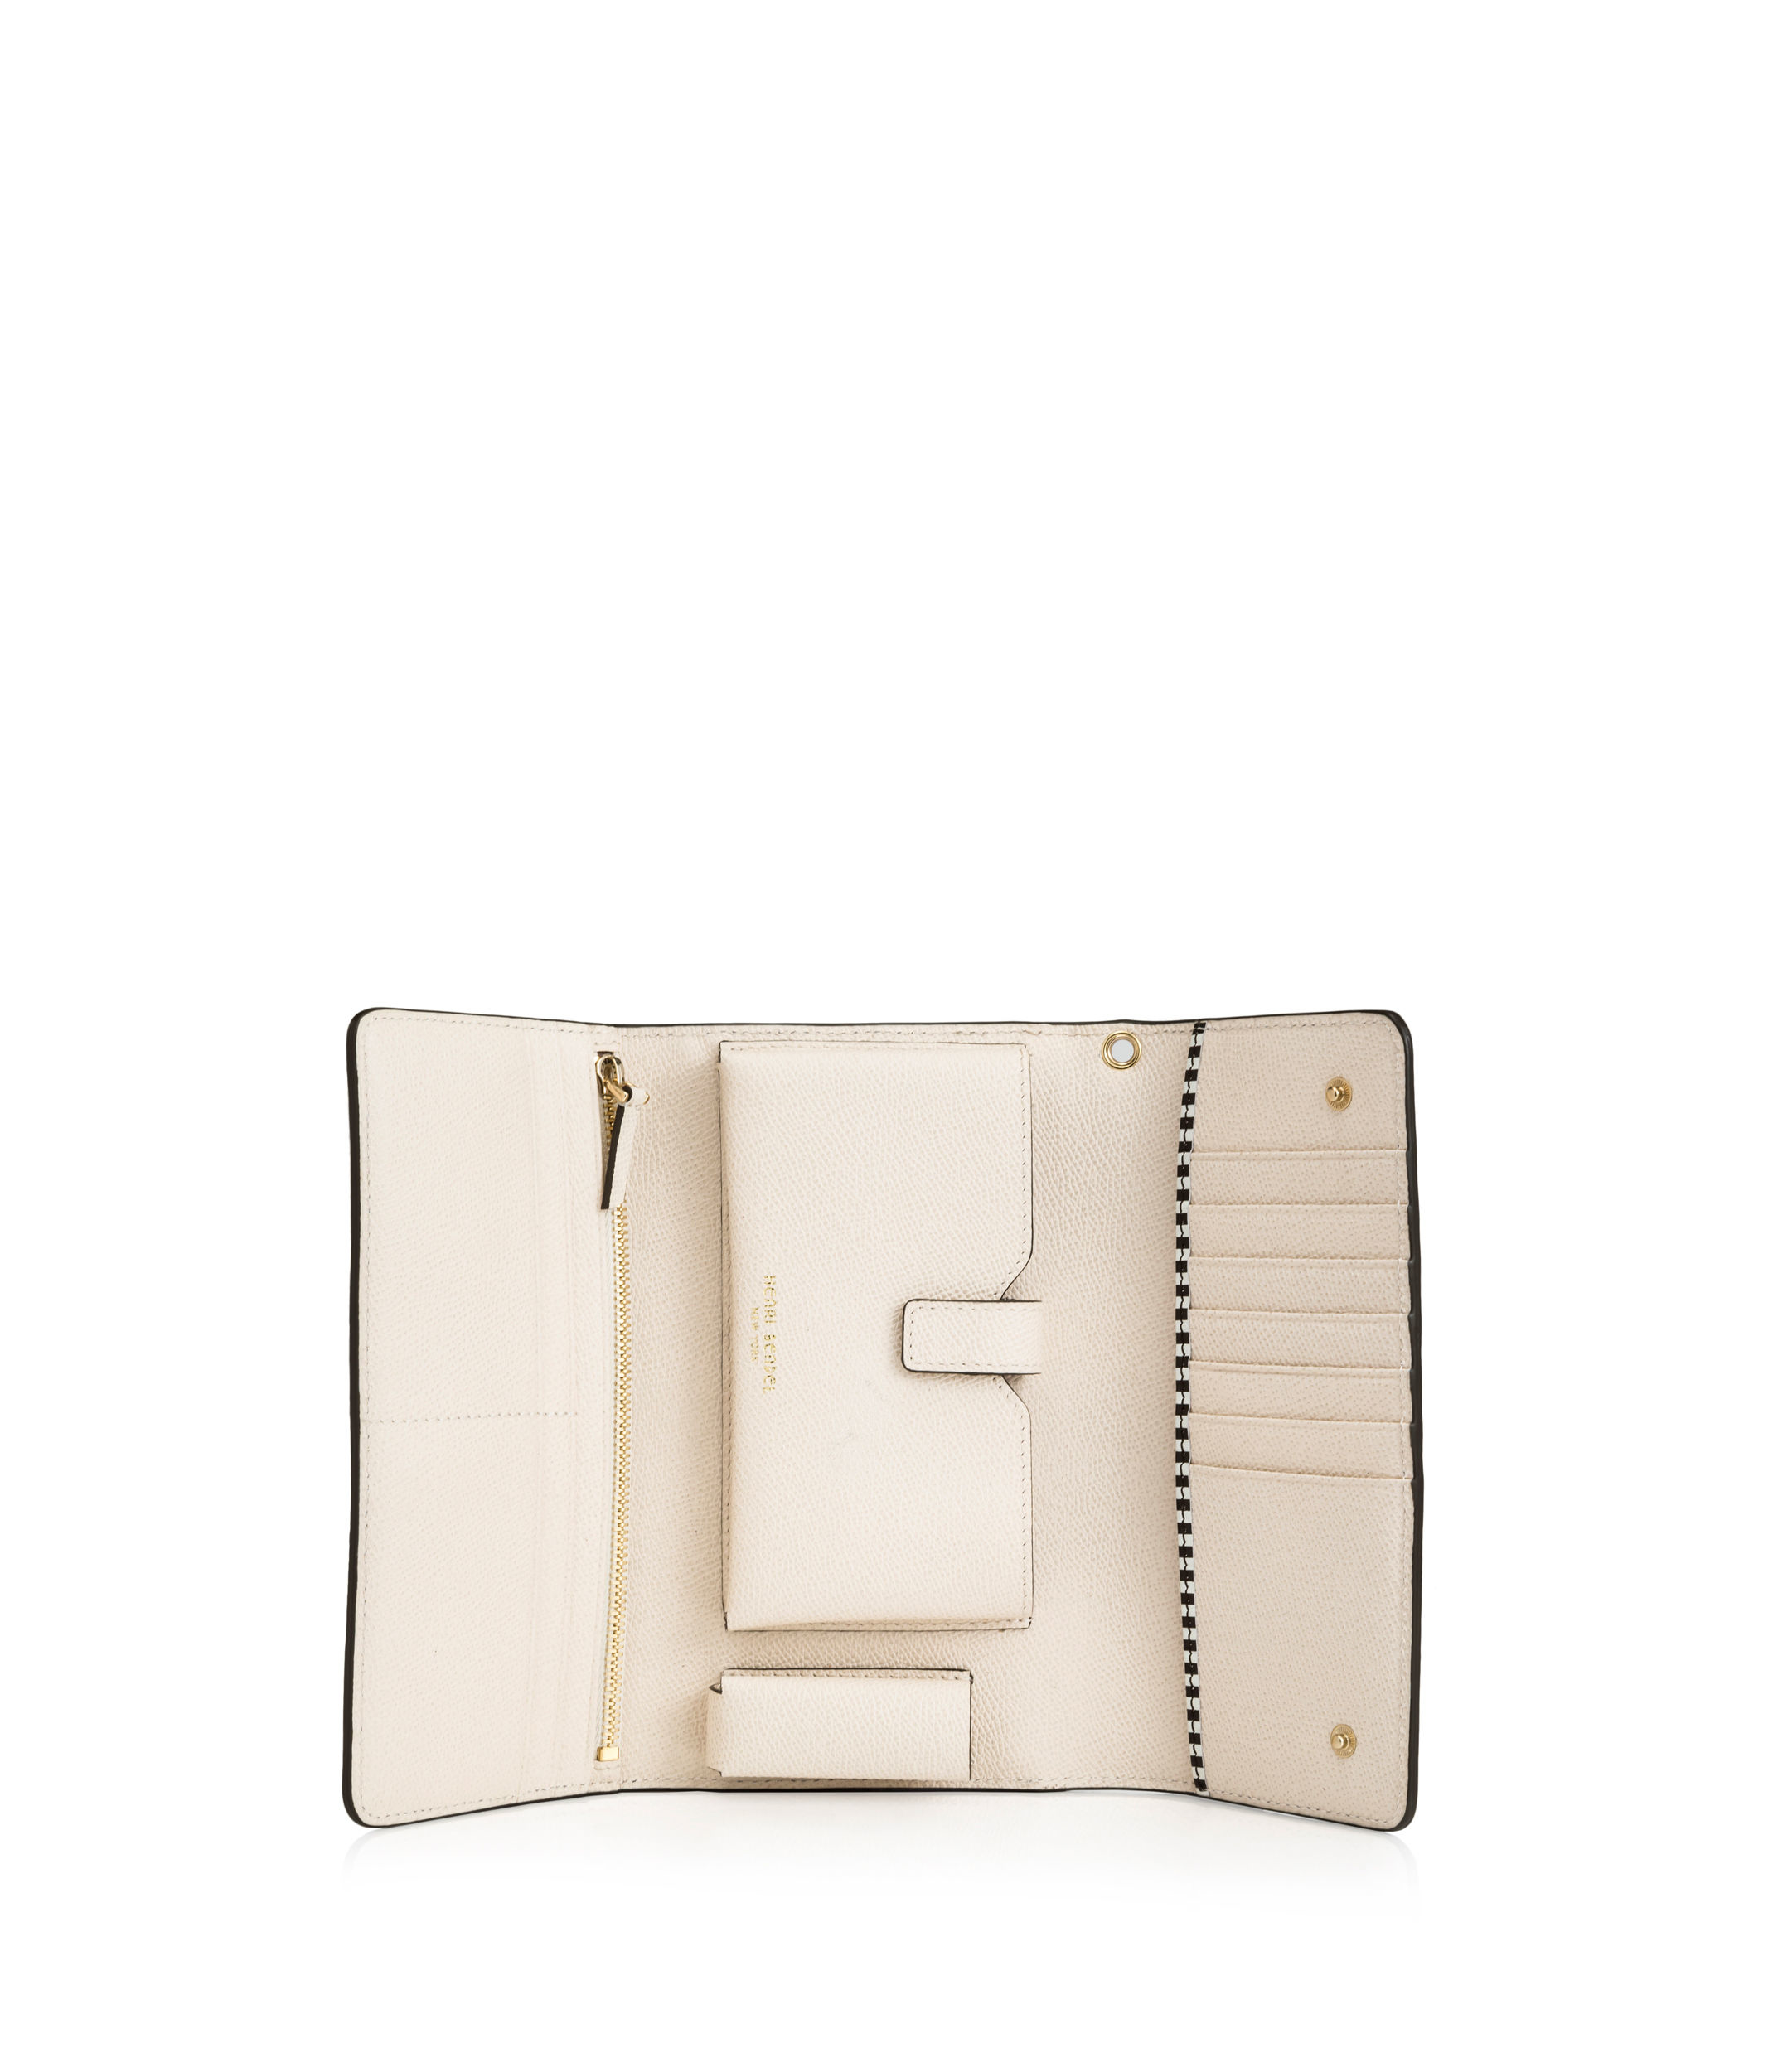 Henri Bendel Uptown Out & About Wallet In White